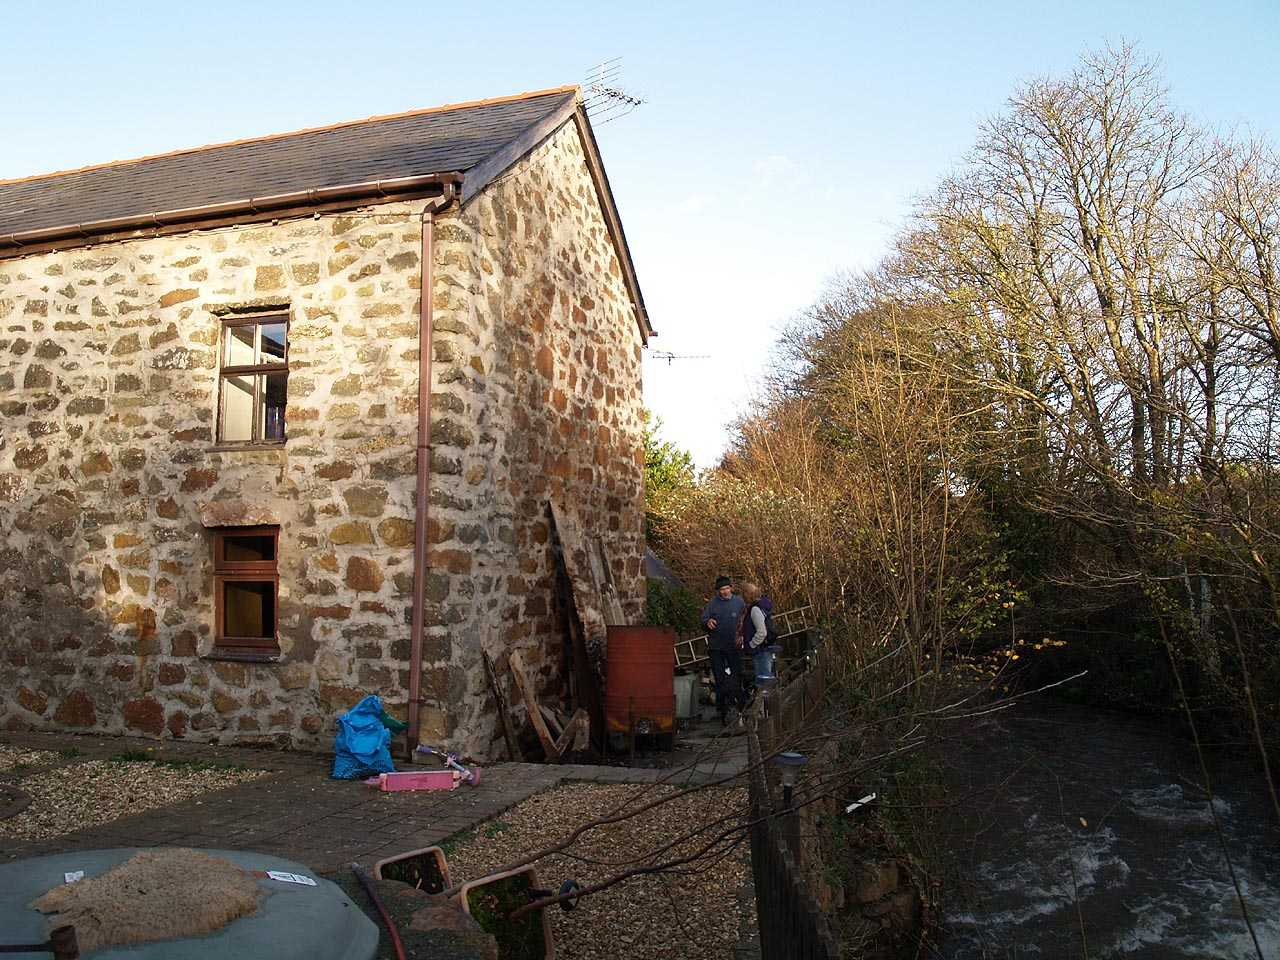 City Dulas, Felin Dulas Watermill - The Water Mill and its' proximity to the River